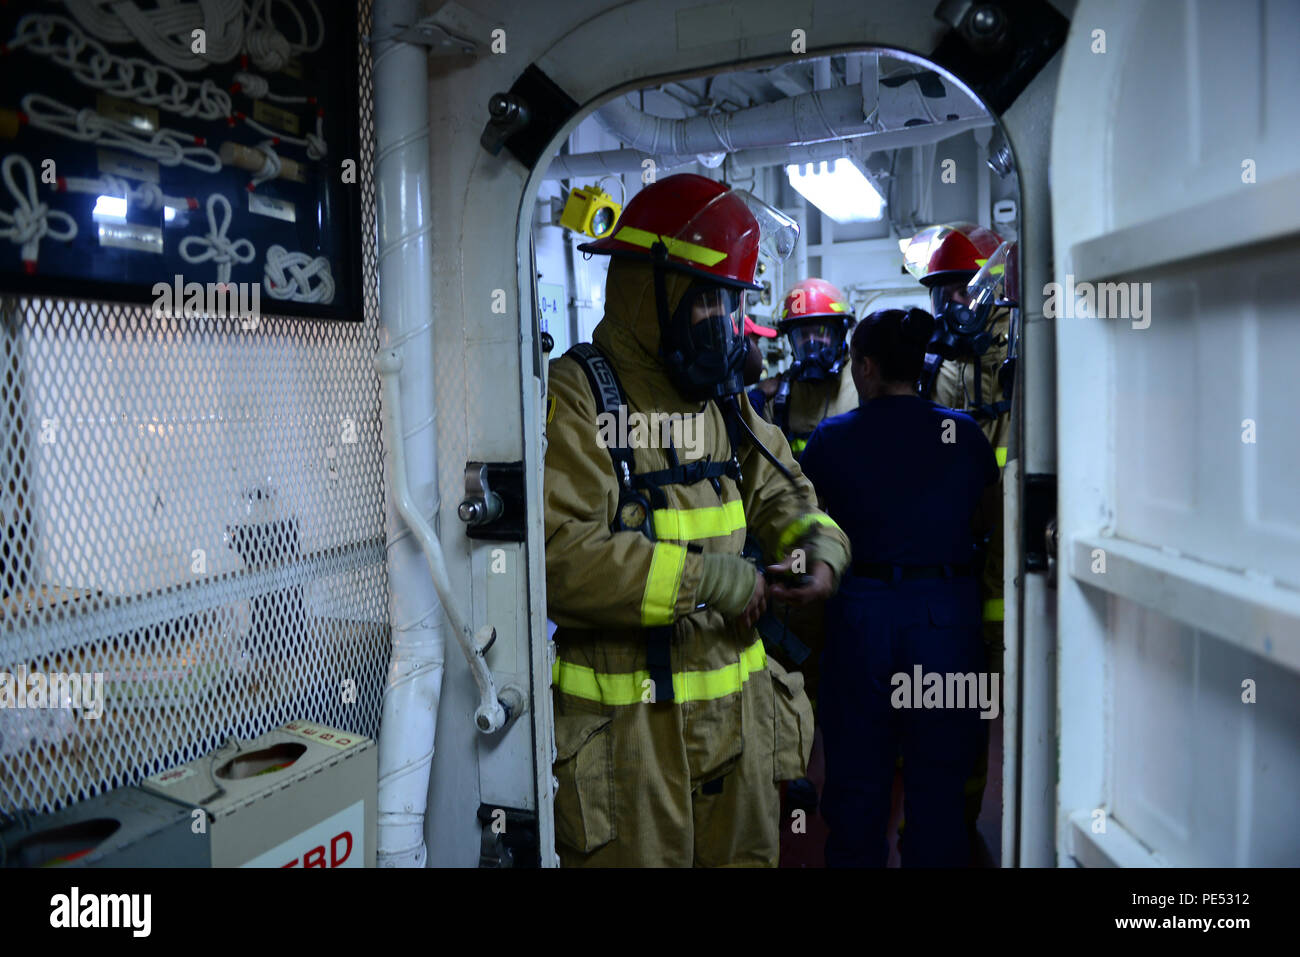 Seaman Bryce Kachinski and fellow new crew members of the Coast Guard Cutter Midgett, a 378-foot high-endurance cutter homeported in Seattle, prepare for shipboard fire training during a patrol in the Pacific Ocean, Oct. 8, 2015. Firefighting and other damage control emergency situations are some of the first things taught to new crew members. (U.S. Coast Guard photo by Petty Officer 1st Class Levi Read) Stock Photo